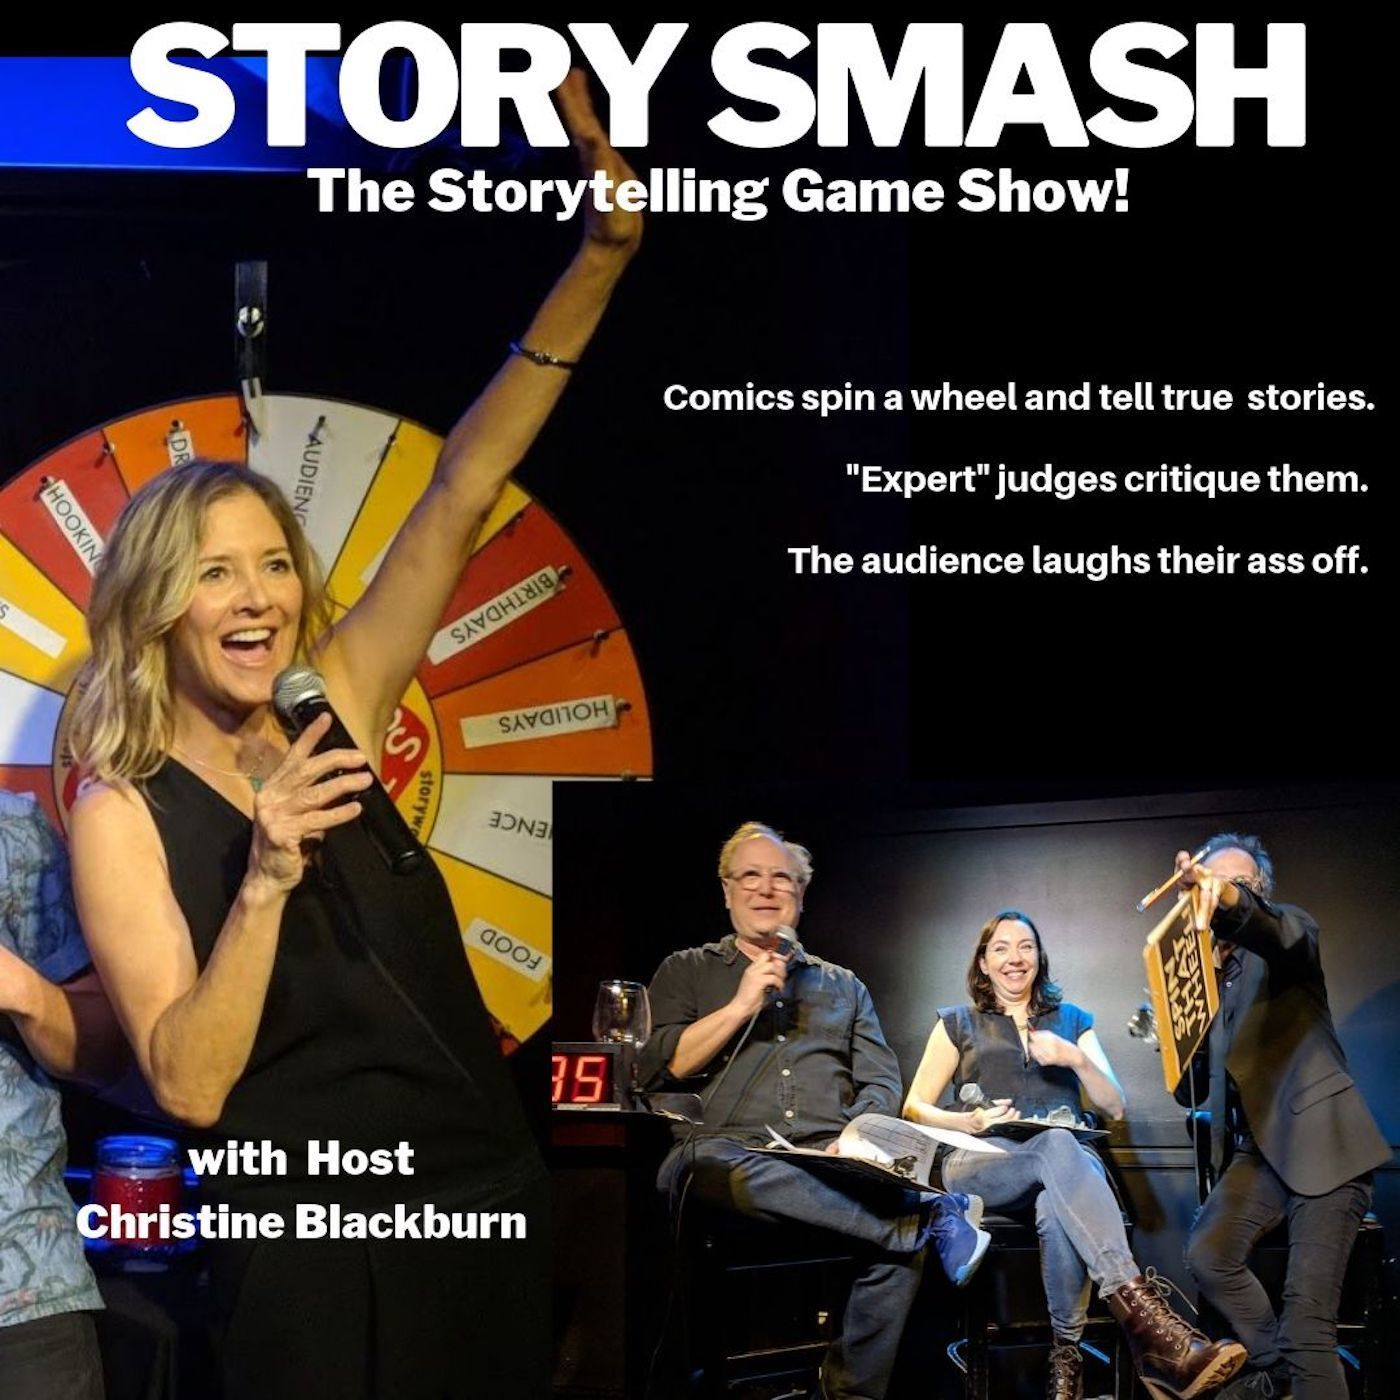 613 - Story Smash the Storytelling Game Show LIVE at the Hollywood Improv